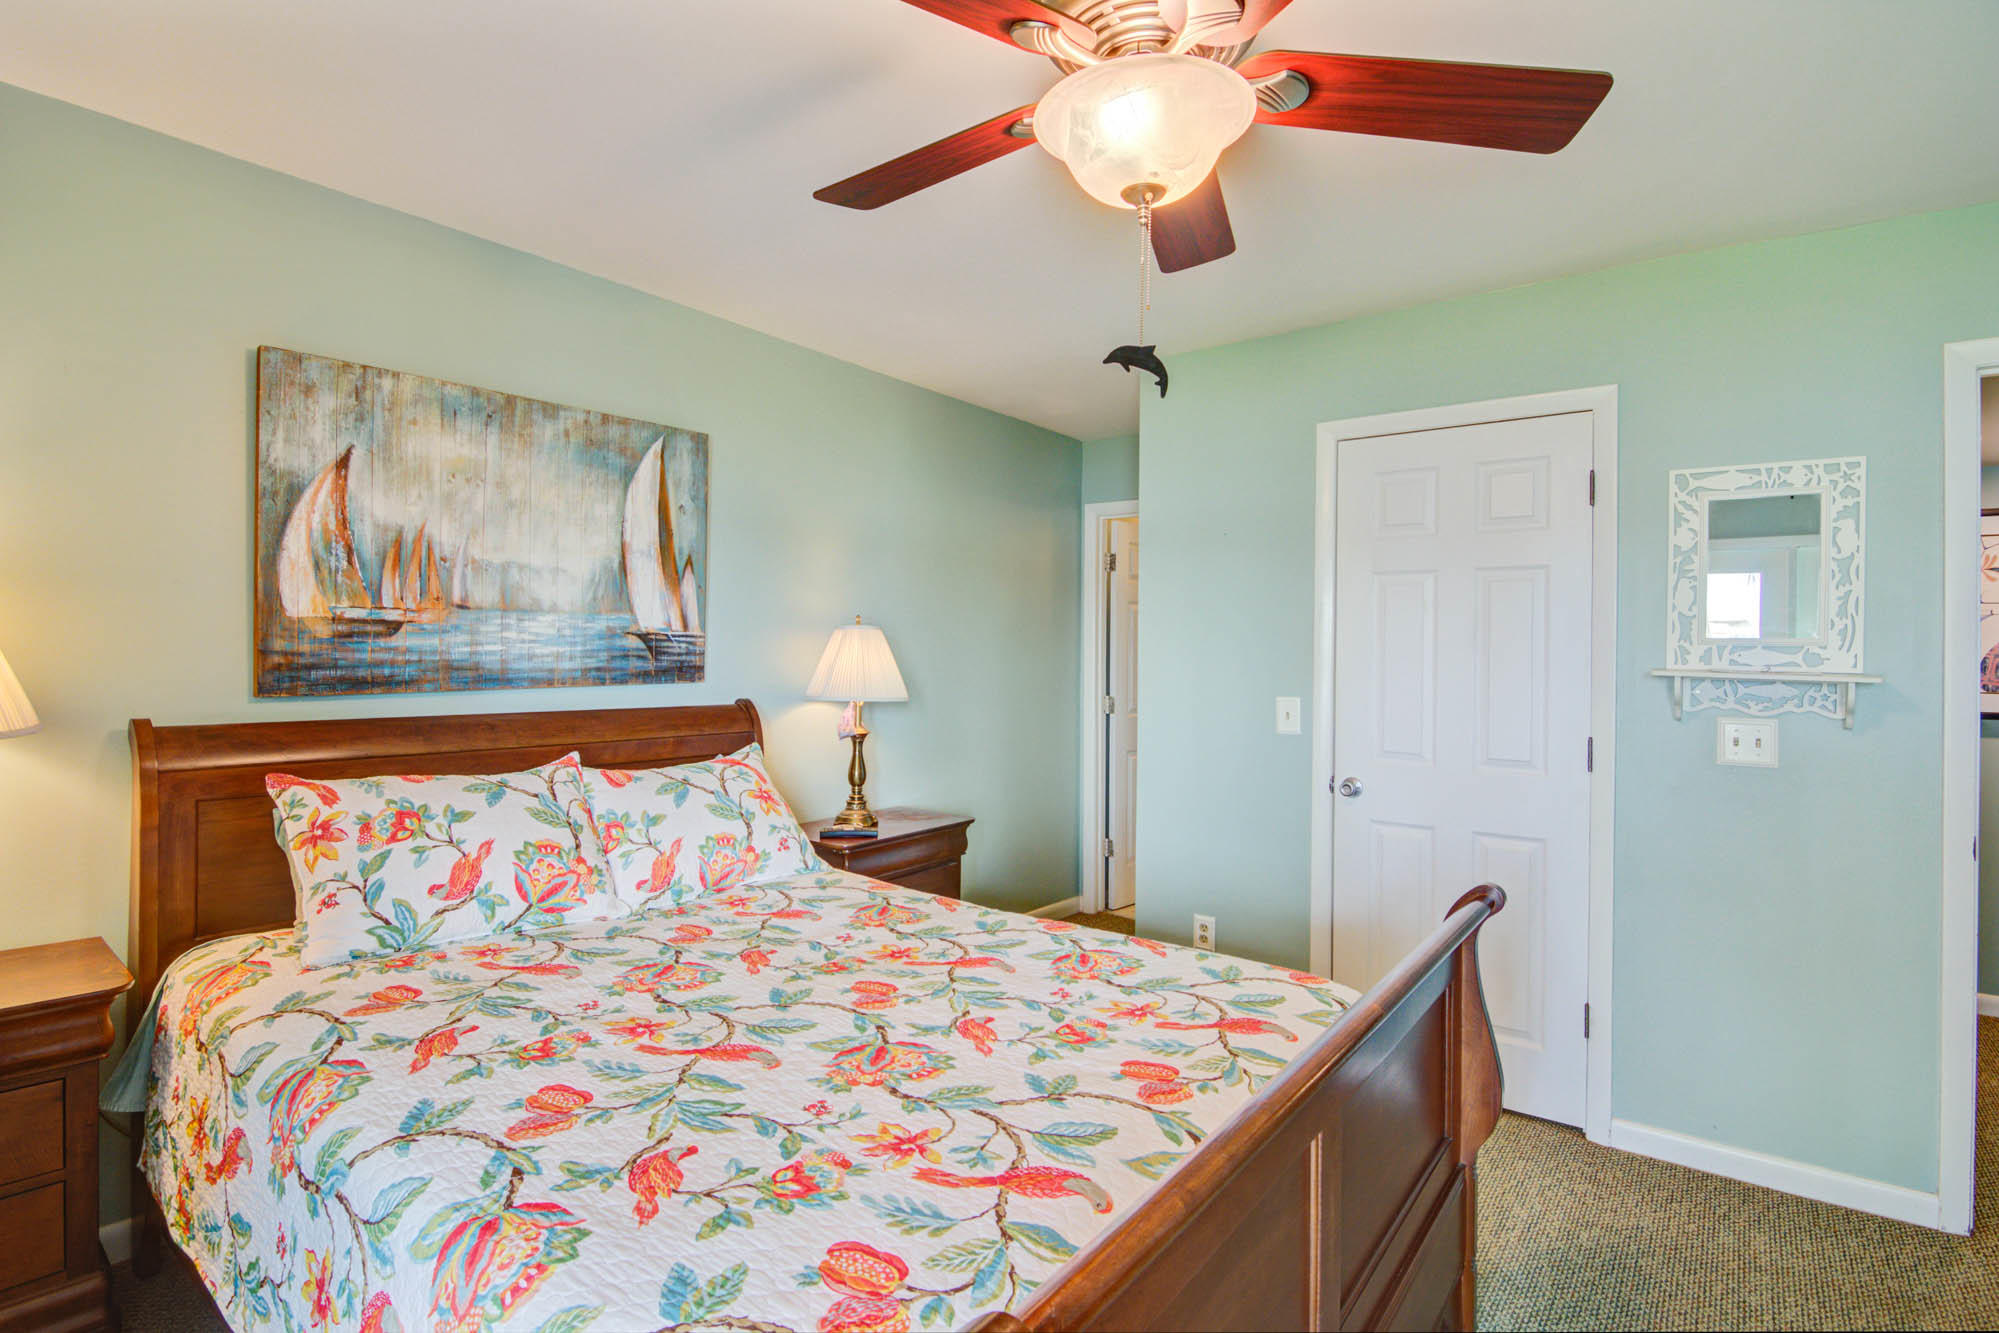 Mariners Cay Homes For Sale - 19 Mariners Cay, Folly Beach, SC - 18